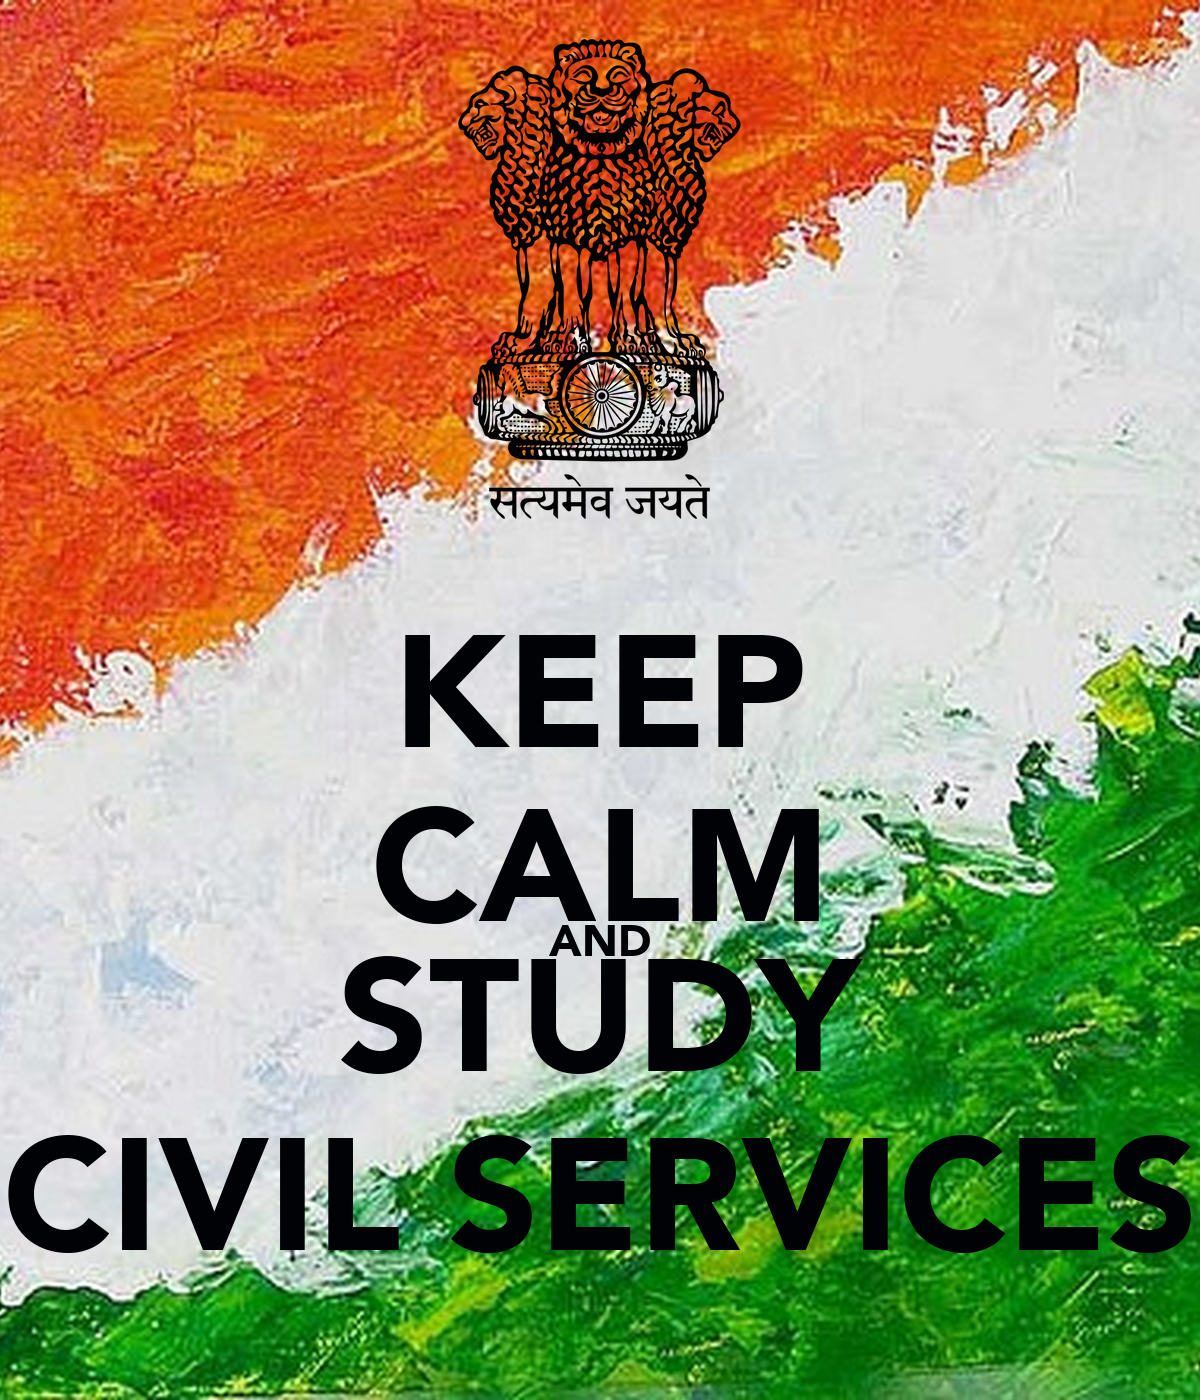 Civil Services Wallpaper And Study Civil Services